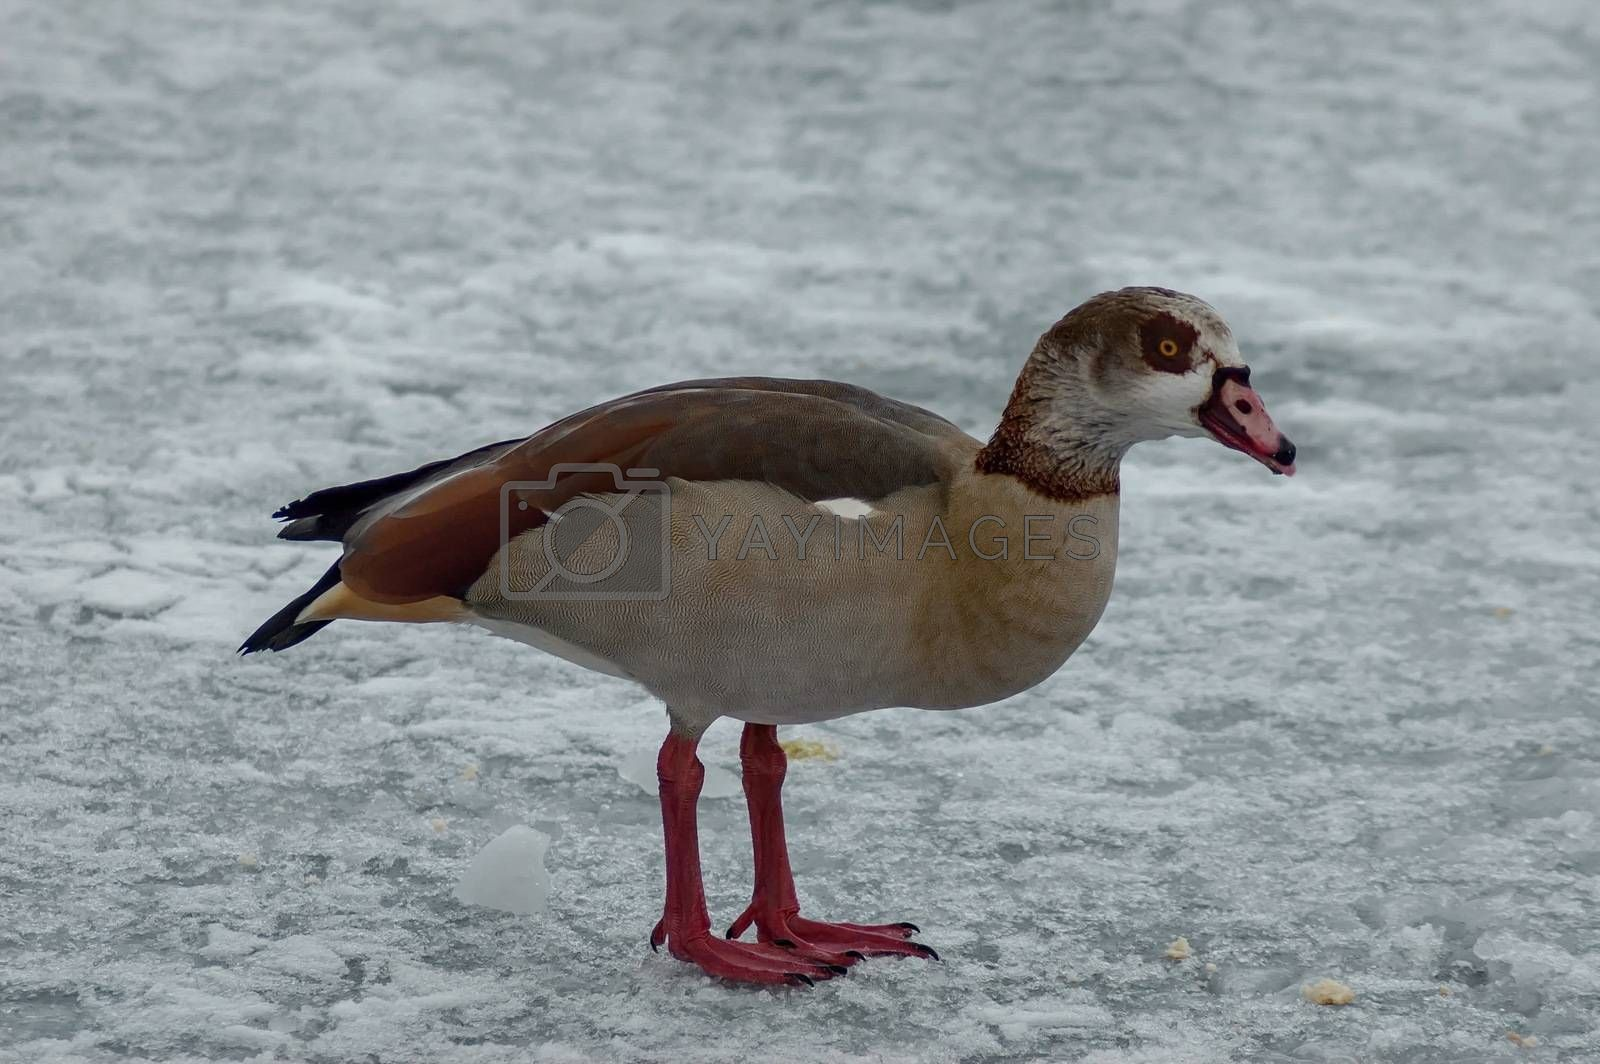 Egyptian goose on the surface of a frozen lake in winter, Sofia, Bulgaria